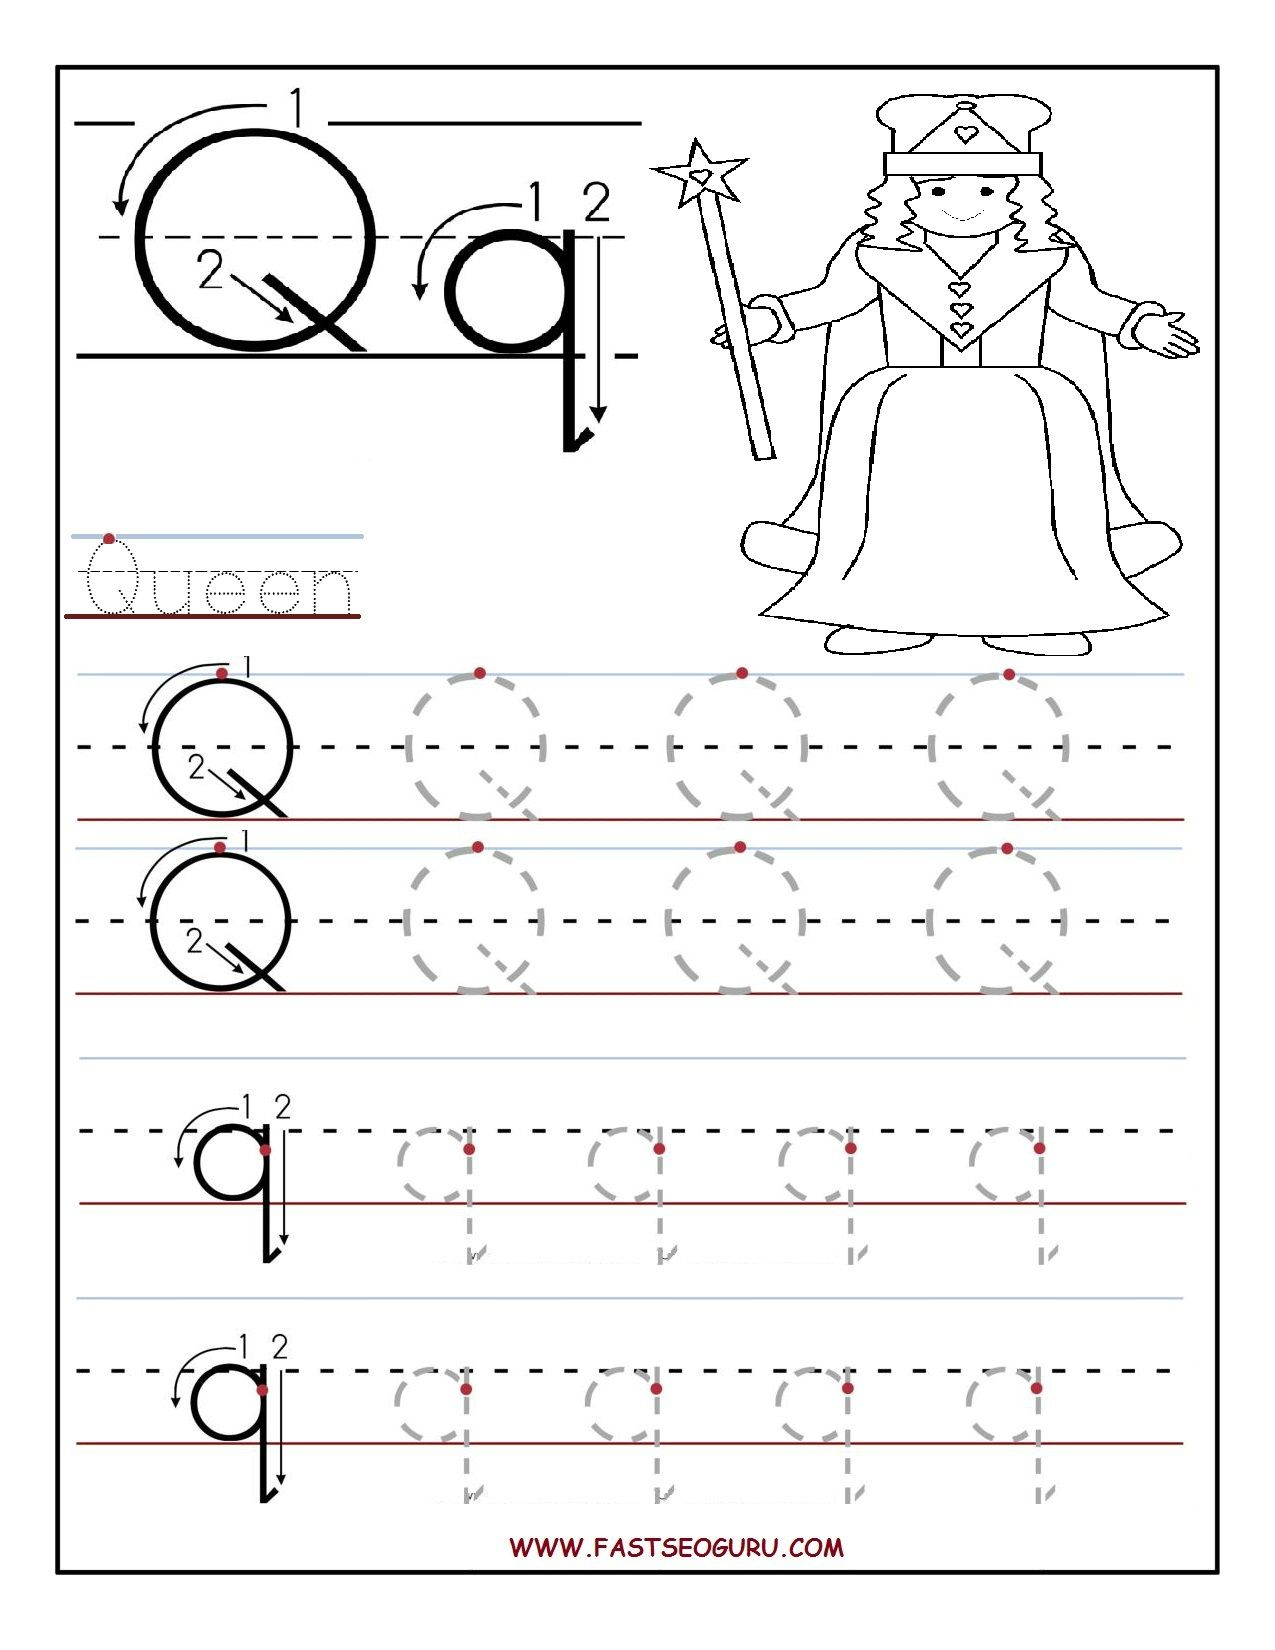 Pin by Vilfran Gason on Decor | Preschool worksheets, Letter ...